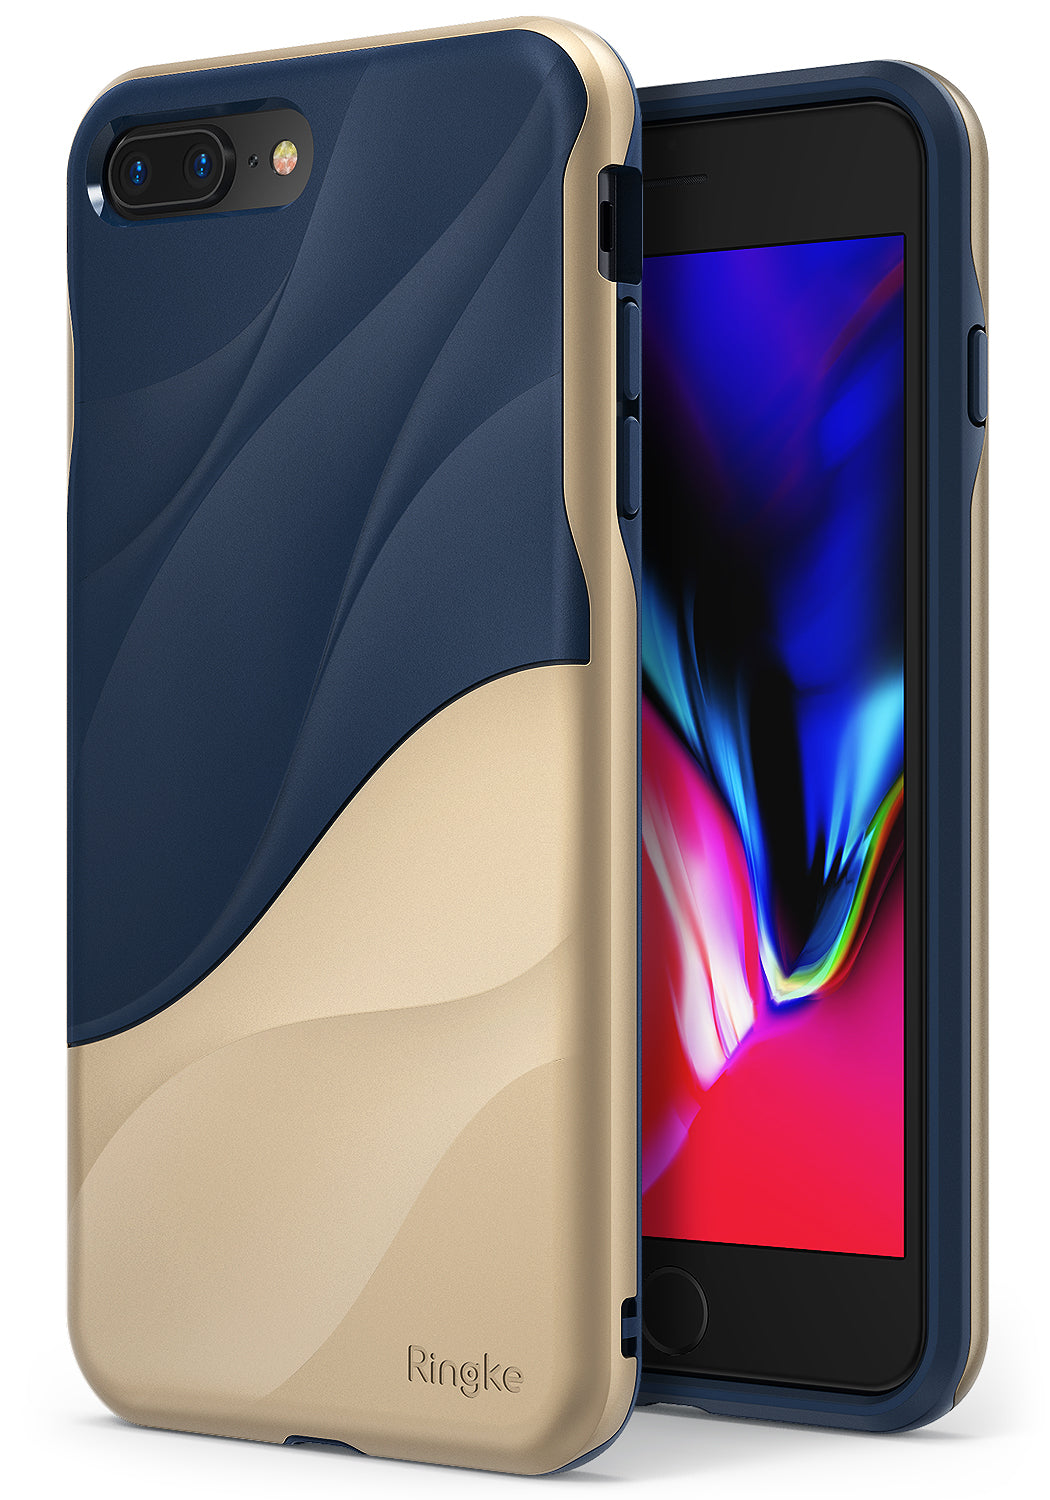 ringke wave dual layered design protective case cover for iphone 7 plus 8 plus main marina gold